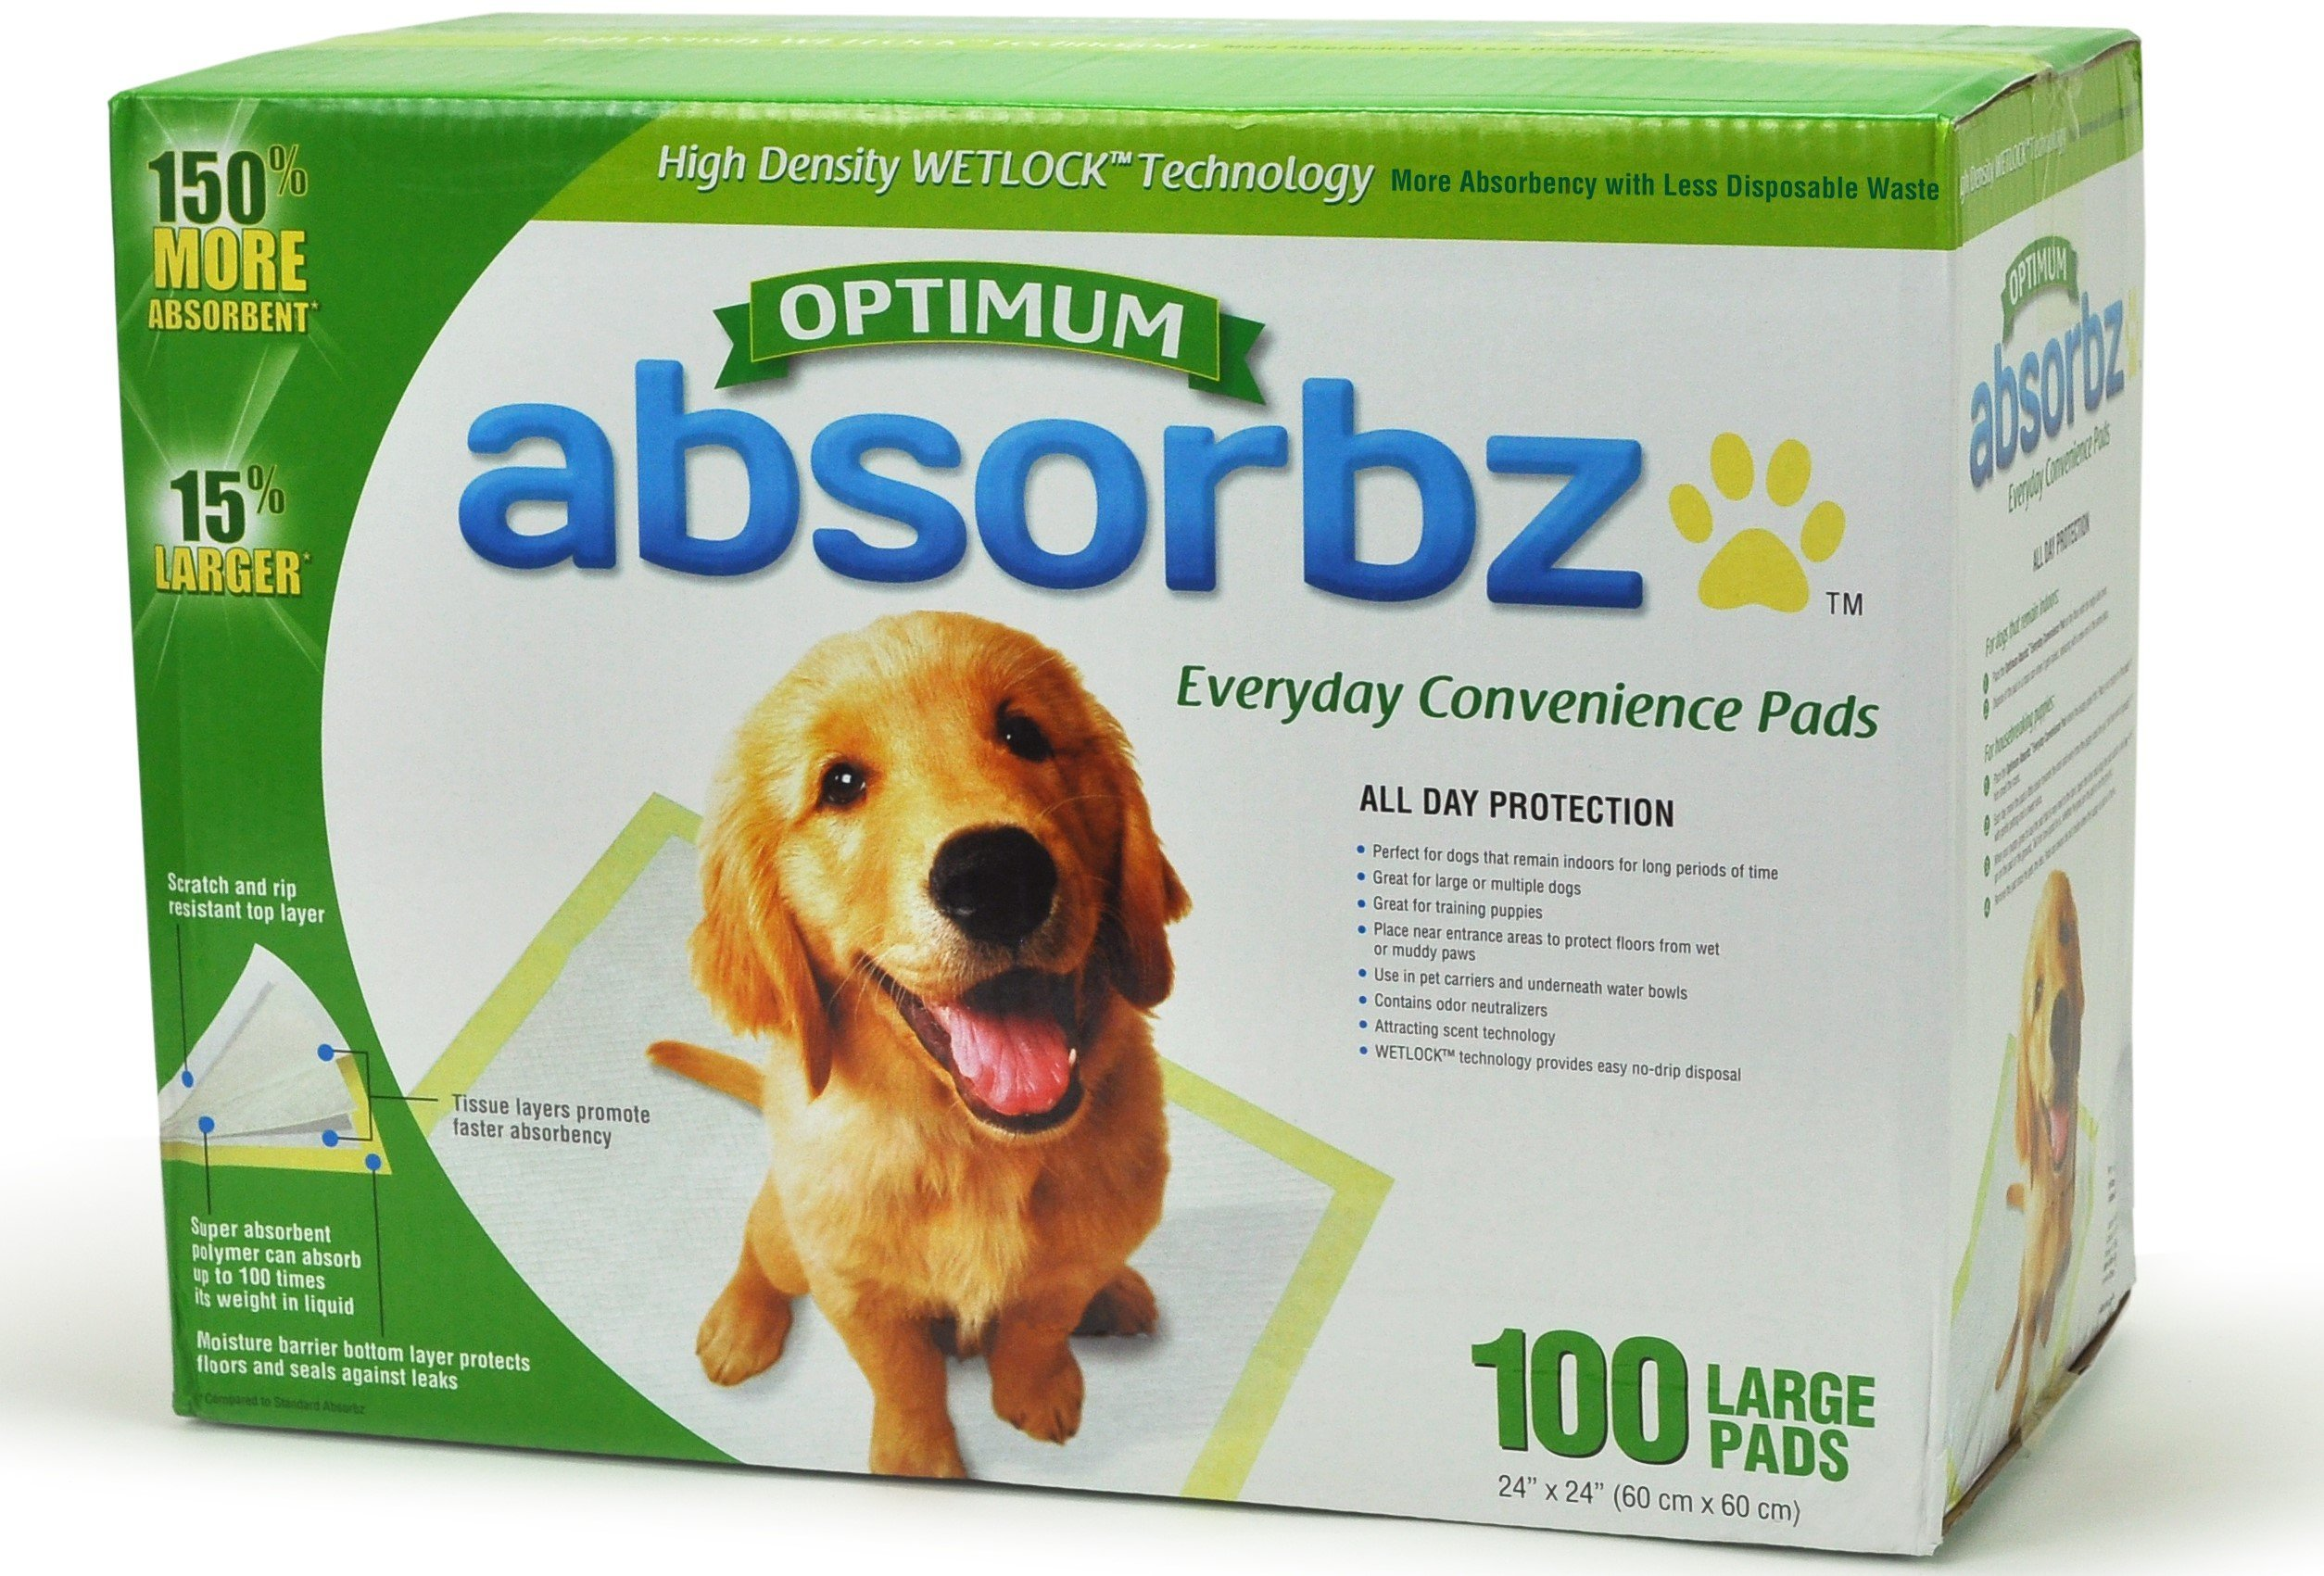 Absorbz Optimum Training Pads for Dogs, 100 ct. Large 24''x24'' Pads